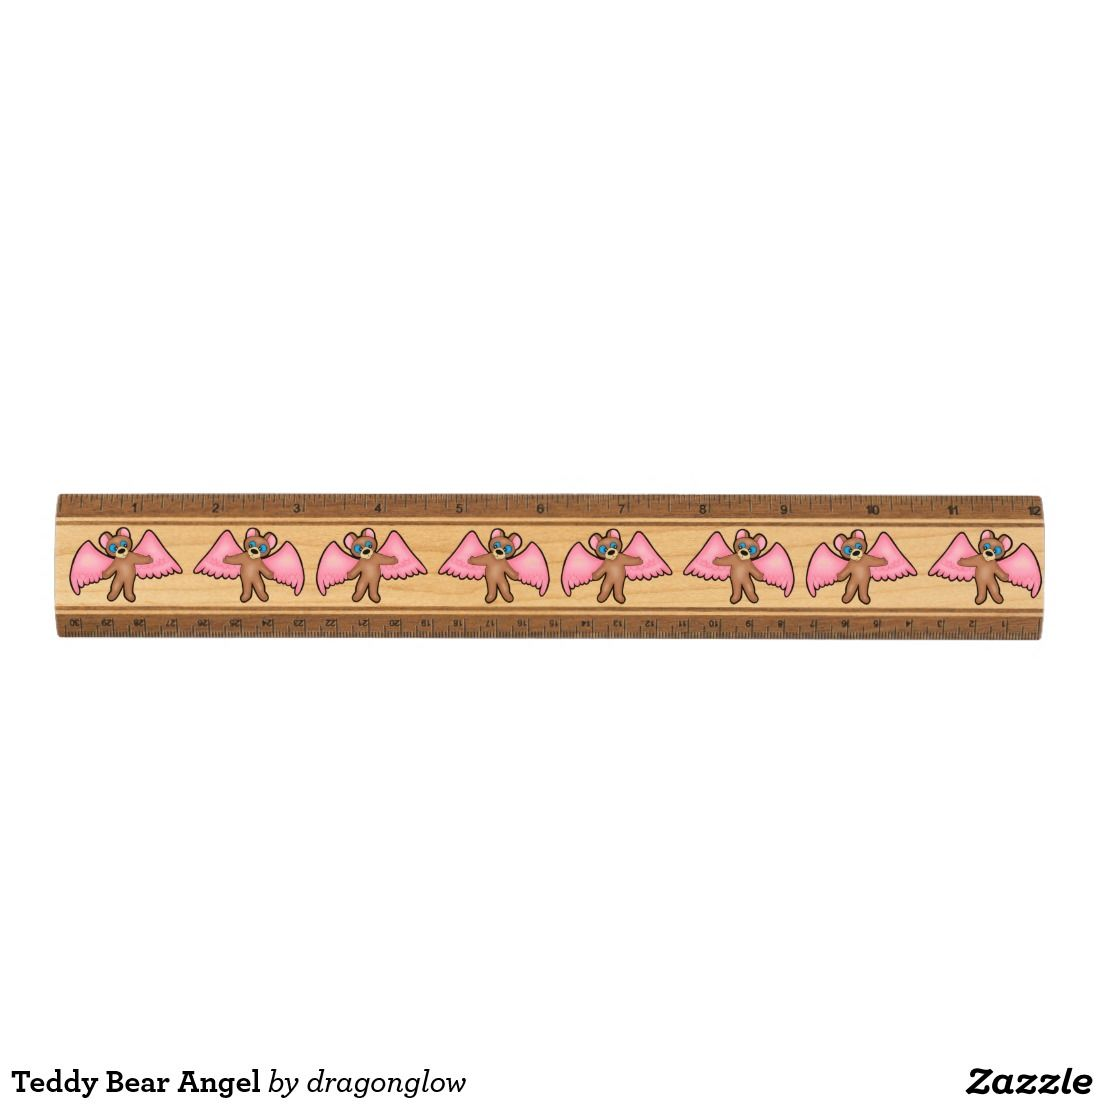 Teddy Bear Angel Digital Art Wood Ruler by DragonGlow - Amber Armstrong on Zazzle